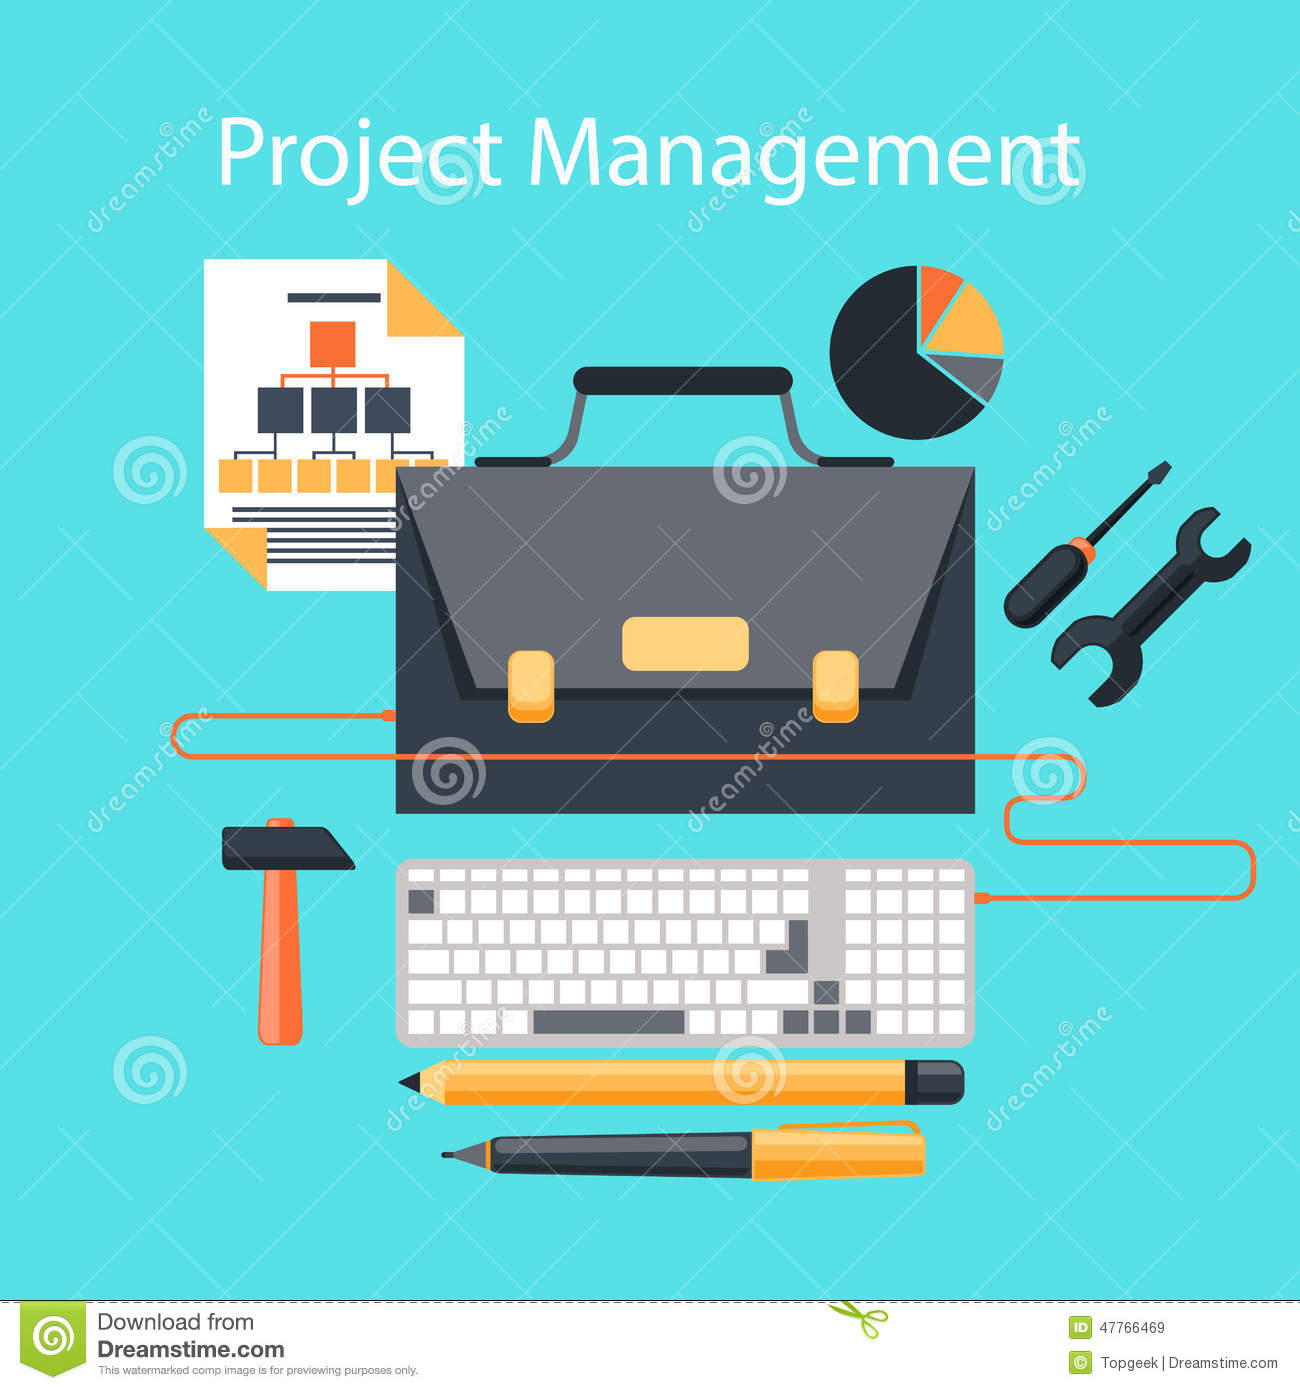 design project management Is your web design team in need of a powerful project management software you'll love activecollab for its features and integrations learn more now.